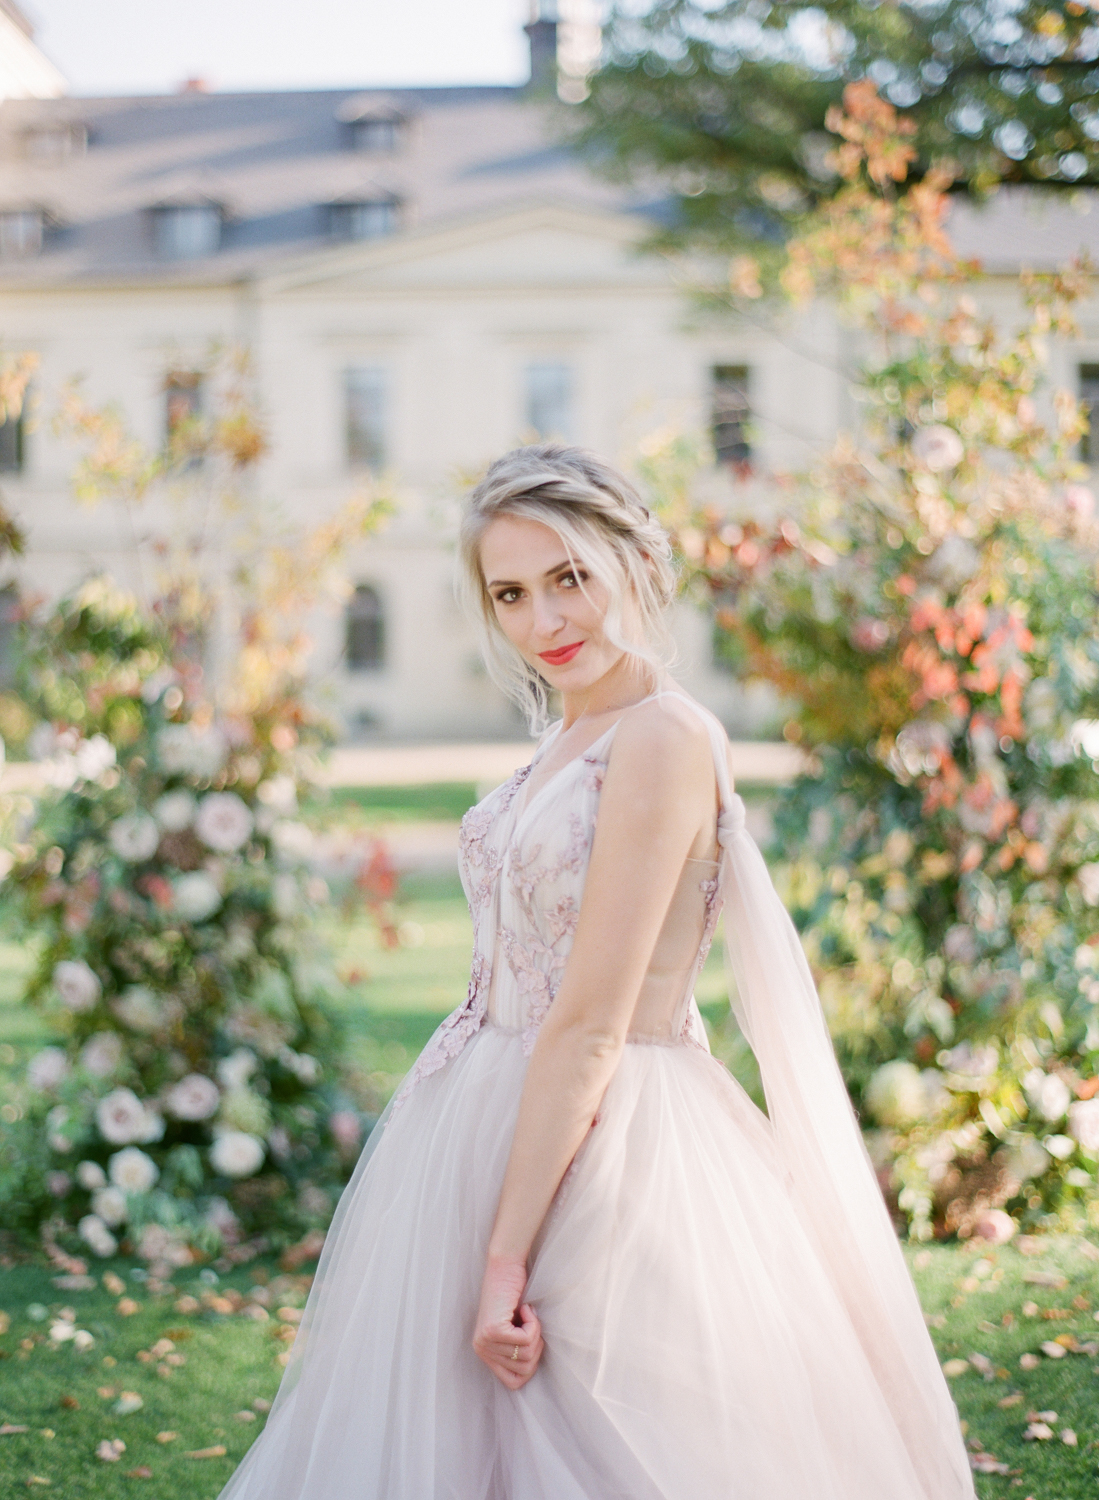 prague wedding photographer chateau mcely wedding editorial nikol bodnarova film wedding photographer182.JPG